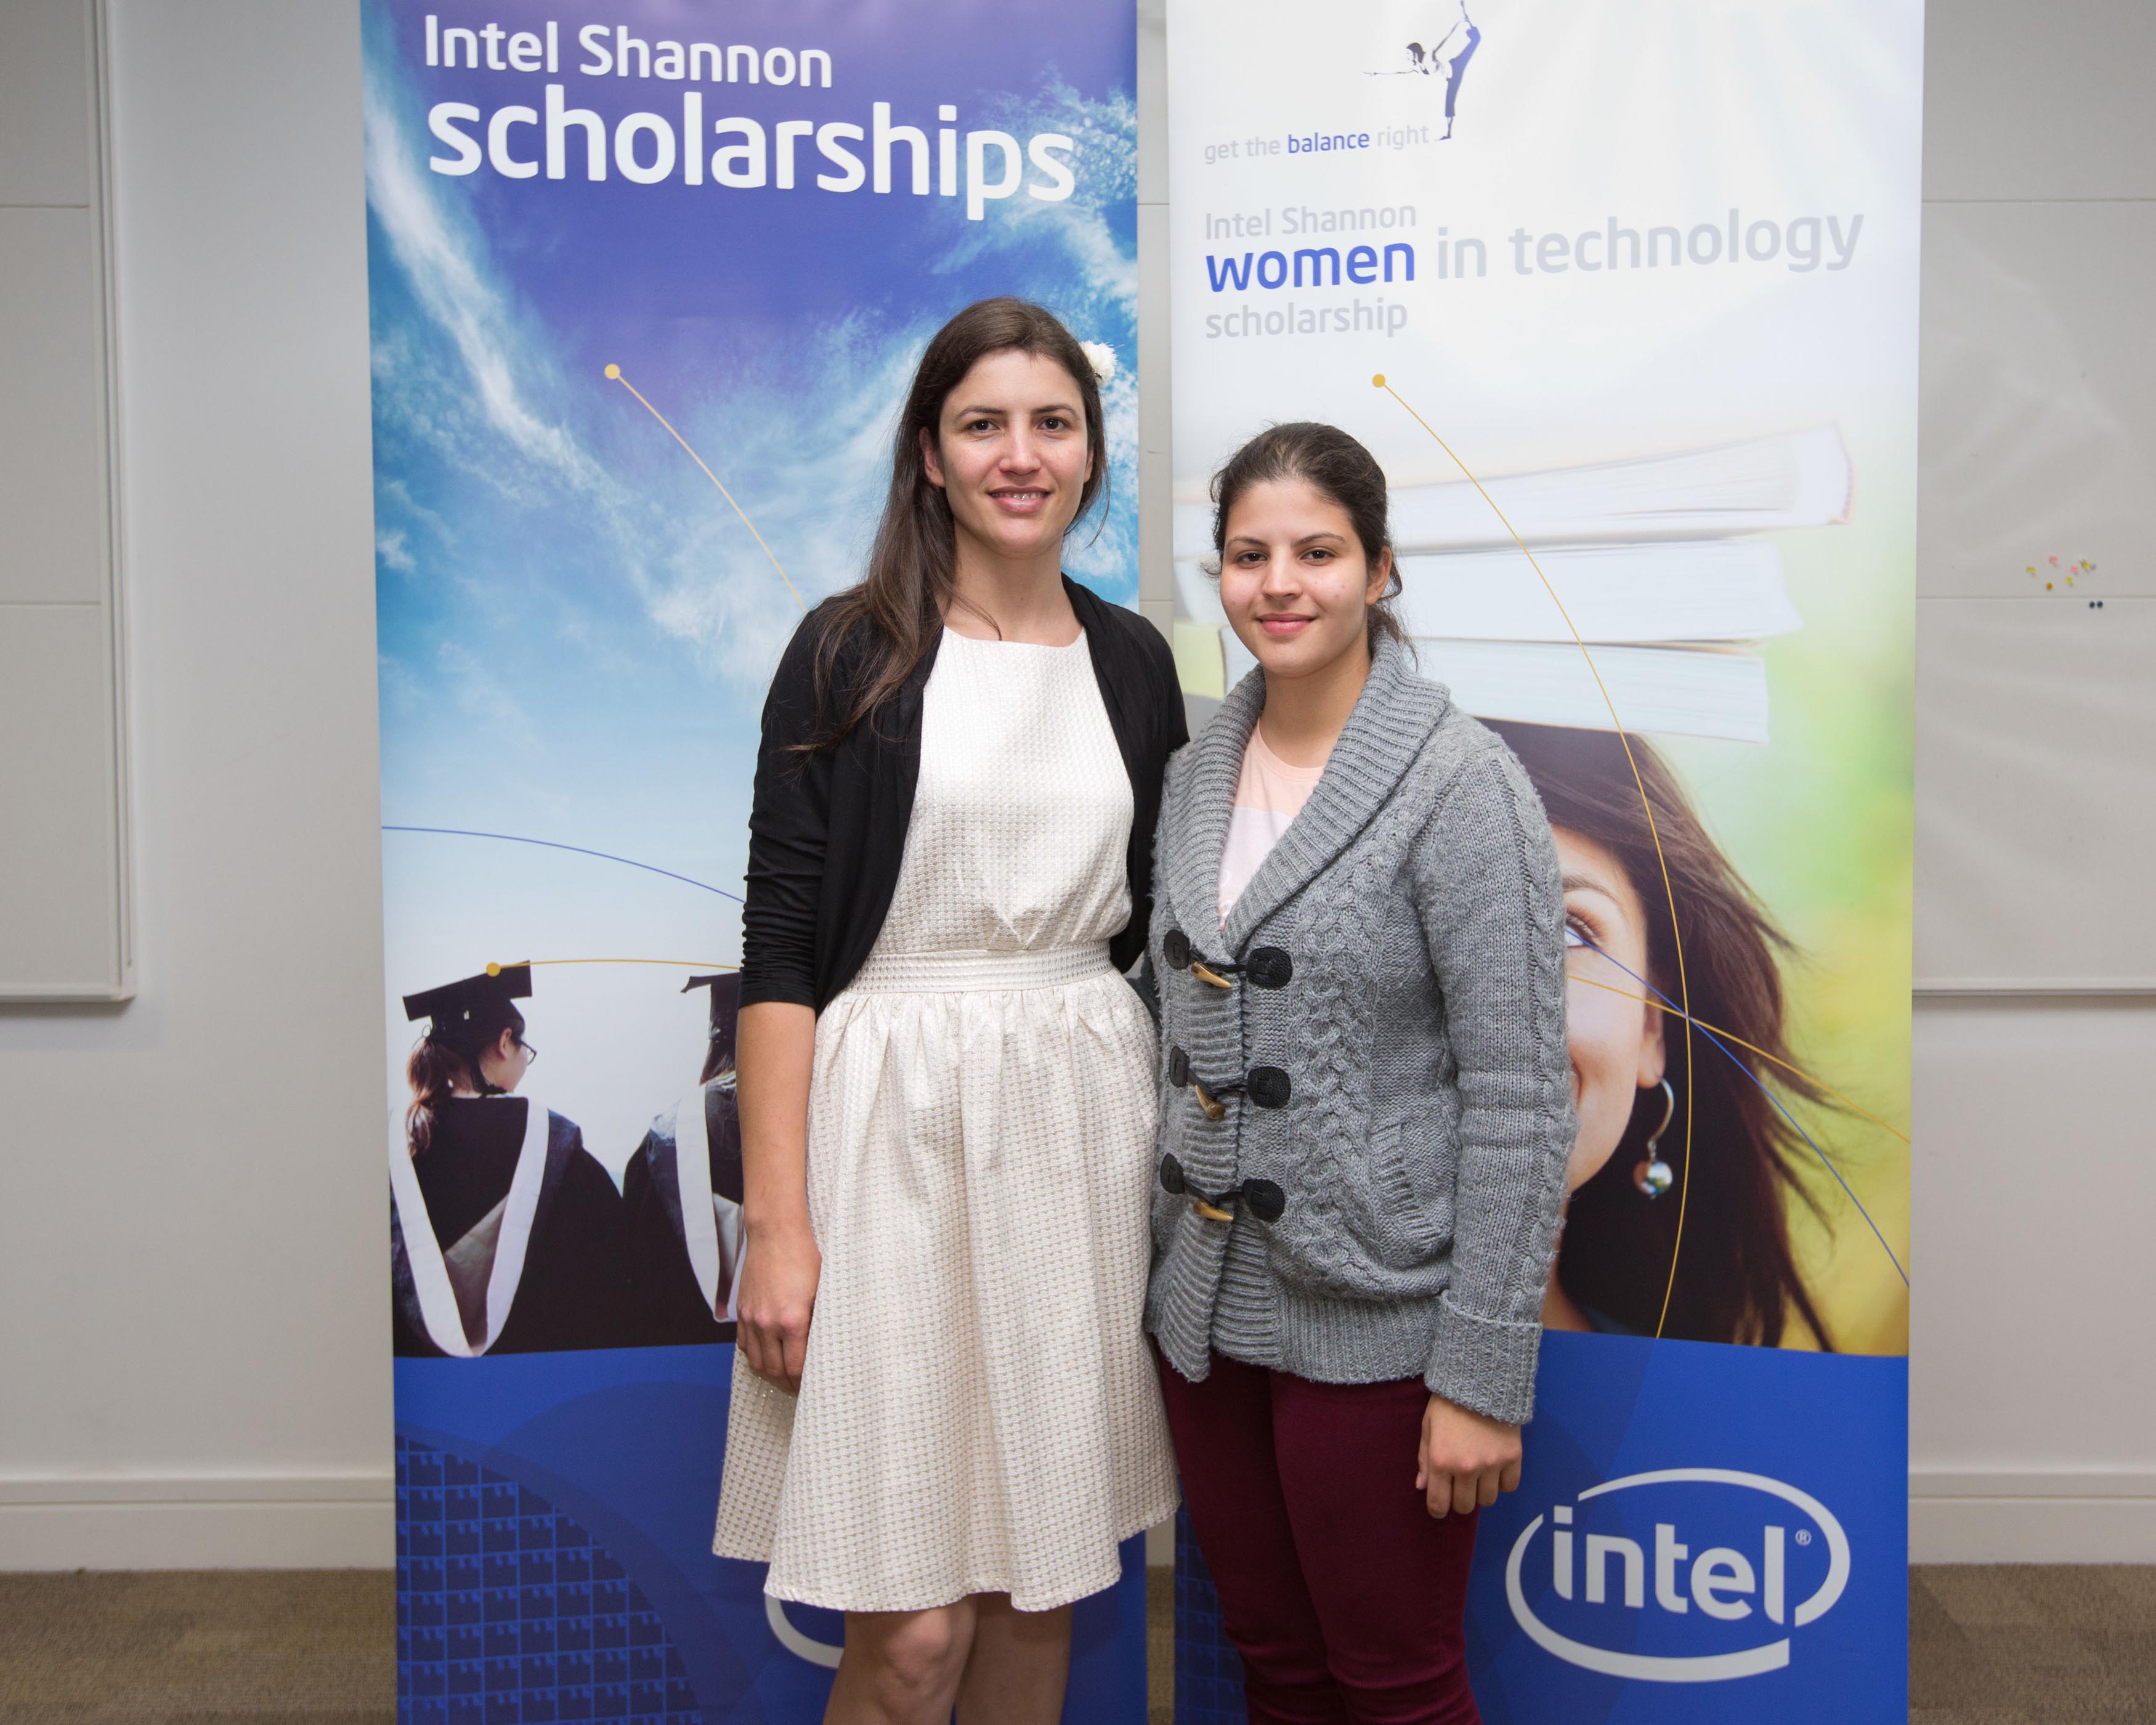 Cristiane Rosa and Thaynara de Silva at Intel ninth ÒWomen in TechnologyÓ award ceremony held at Intel in Shannon. Intel in Shannon continued its focus on promoting science and engineering in the local area by holding its ninth annual Women in Technology (WIT) award ceremony recently. Five new scholarships were awarded, while seven other scholars renewed their scholarships by merit of their academic results. Current award recipients are from Clare, Limerick and Cork and are attending University of Limerick, Limerick Institute of Technology, University College Cork, NUI Galway, and Cork Institute of Technology, to study technology focused courses such as Electronic and Computer Engineering and Computer Science. Intel Shannon also awarded scholarships to a number of young male scholars starting technology and engineering courses in the University of Limerick as part of the Paul Whelan memorial scholarship program. The scholarship programs provide a unique opportunity for Intel to encourage a new generation of high-achieving young people to take up the challenge of a career in science and technology. Over the nine years since the program was first initiated, Intel Shannon has invested almost $500,000 in scholarships and placement programs. Pic Sean Curtin Photo.